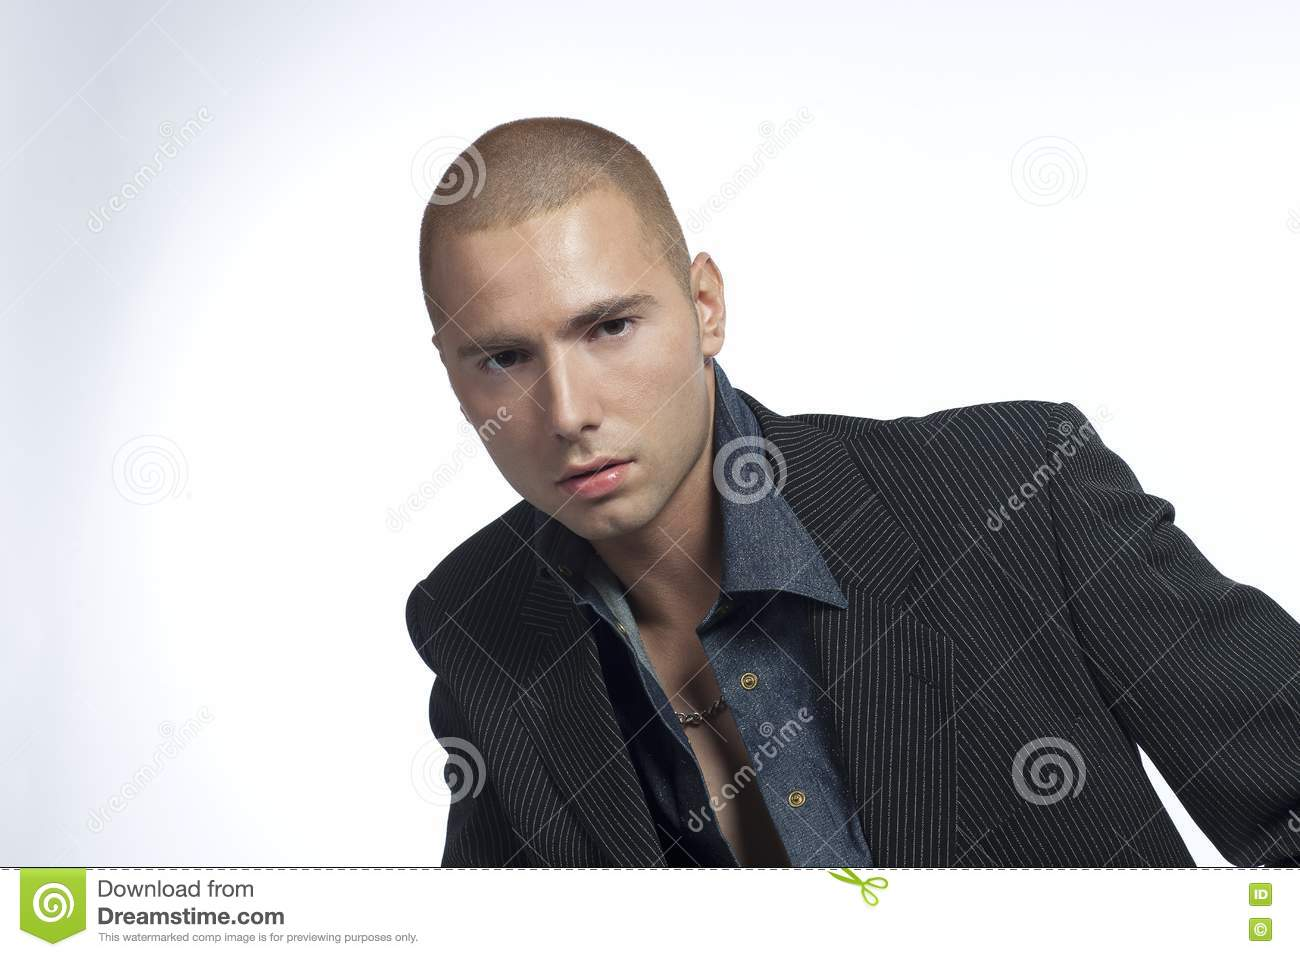 Good Looking Young Man Royalty Free Stock Image - Image ...  Good Looking Young Man